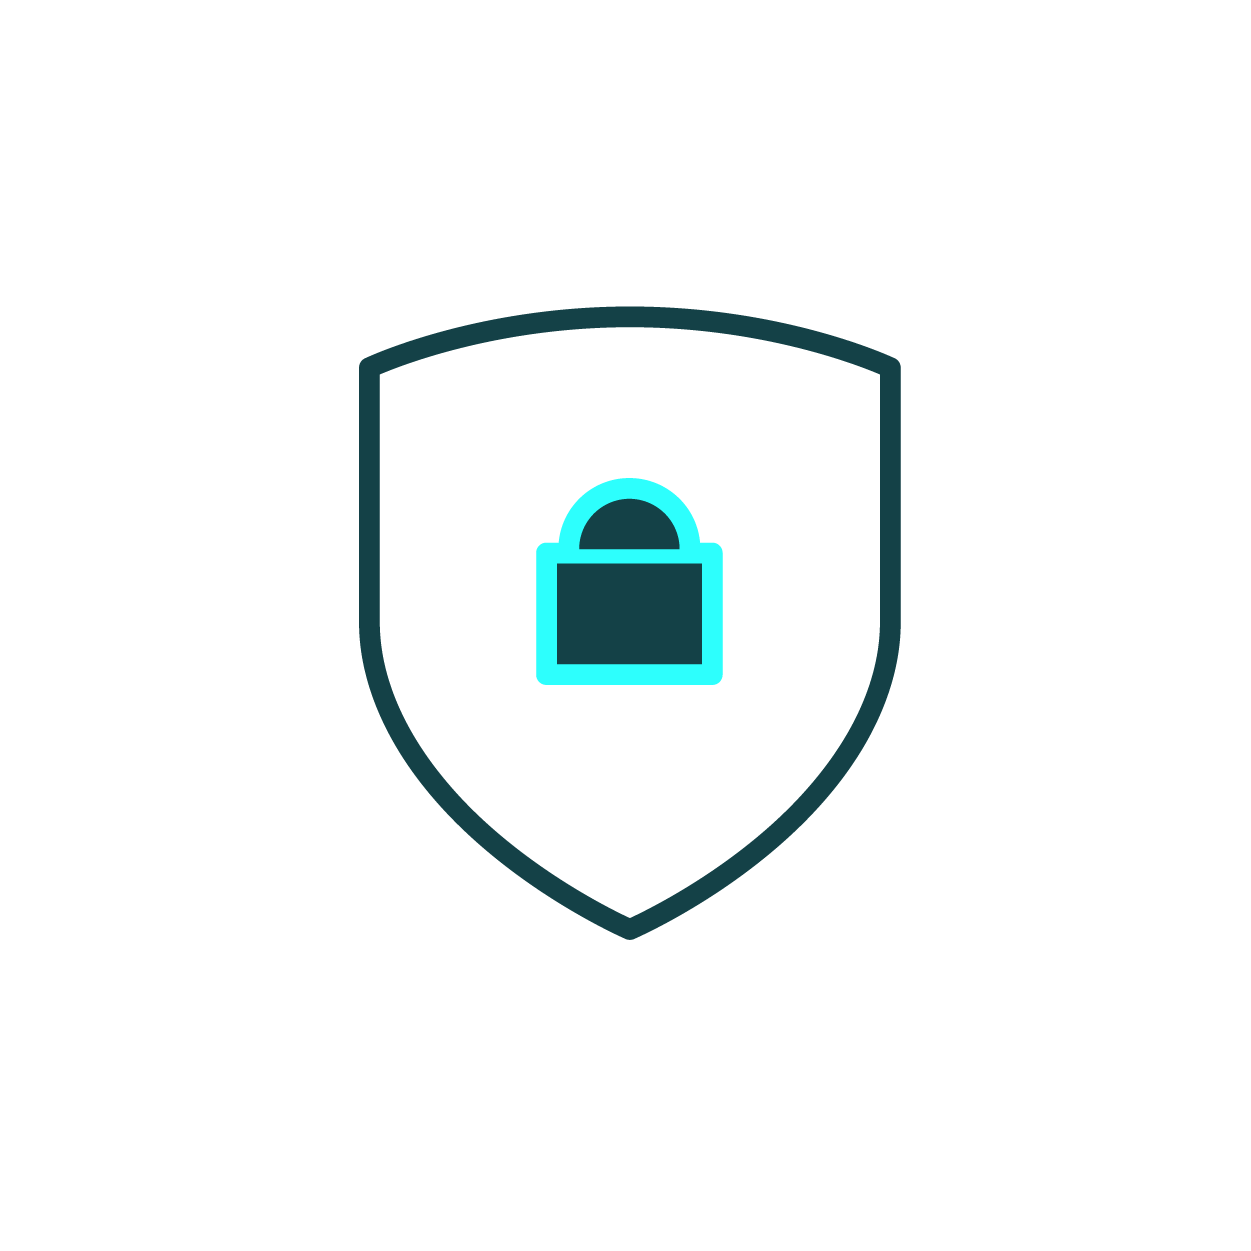 Secure and compliant